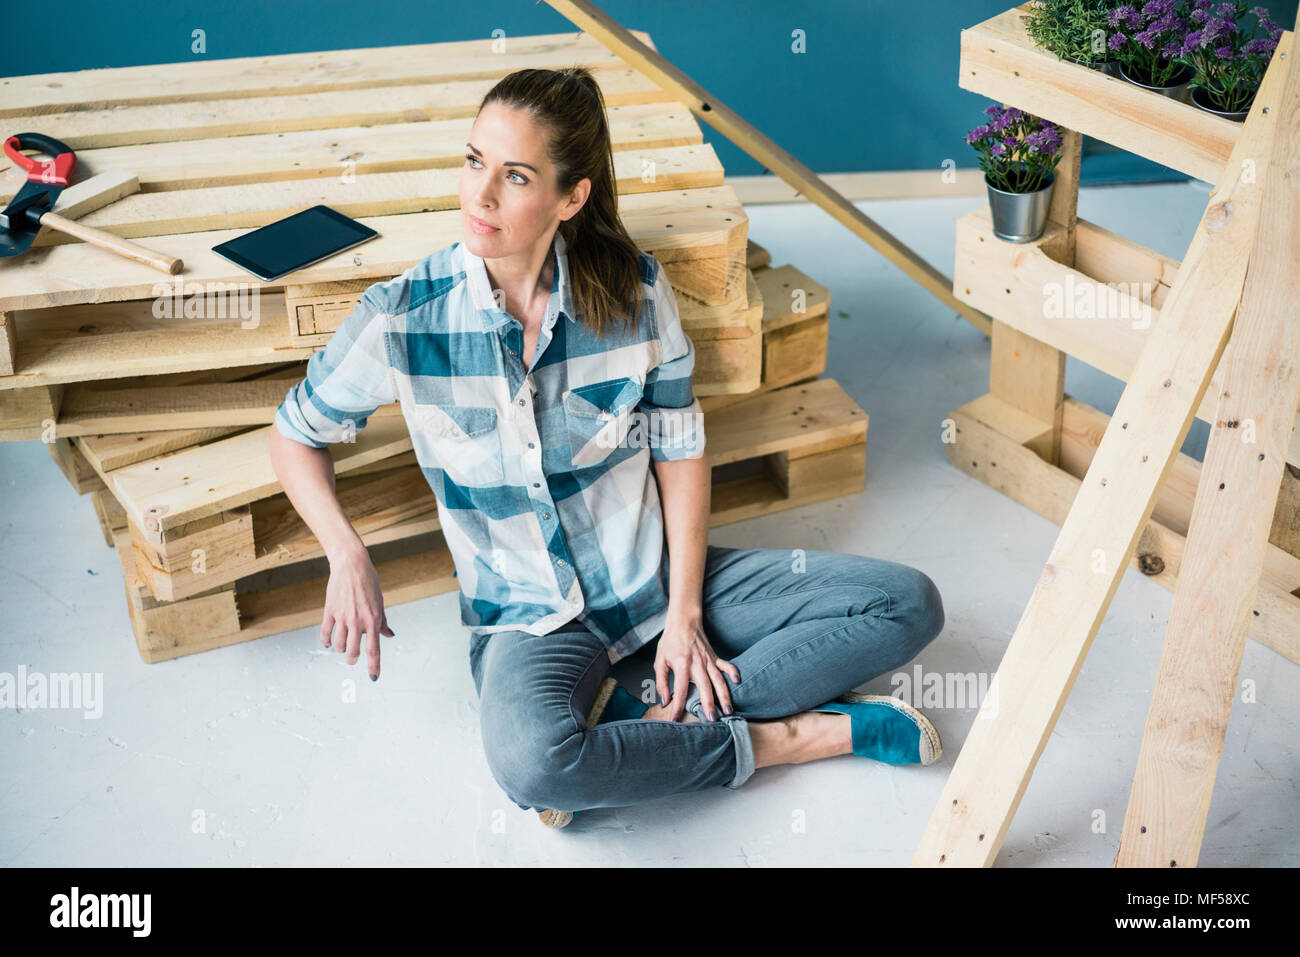 Beautiful woman planning to refurbish her home with pallets - Stock Image